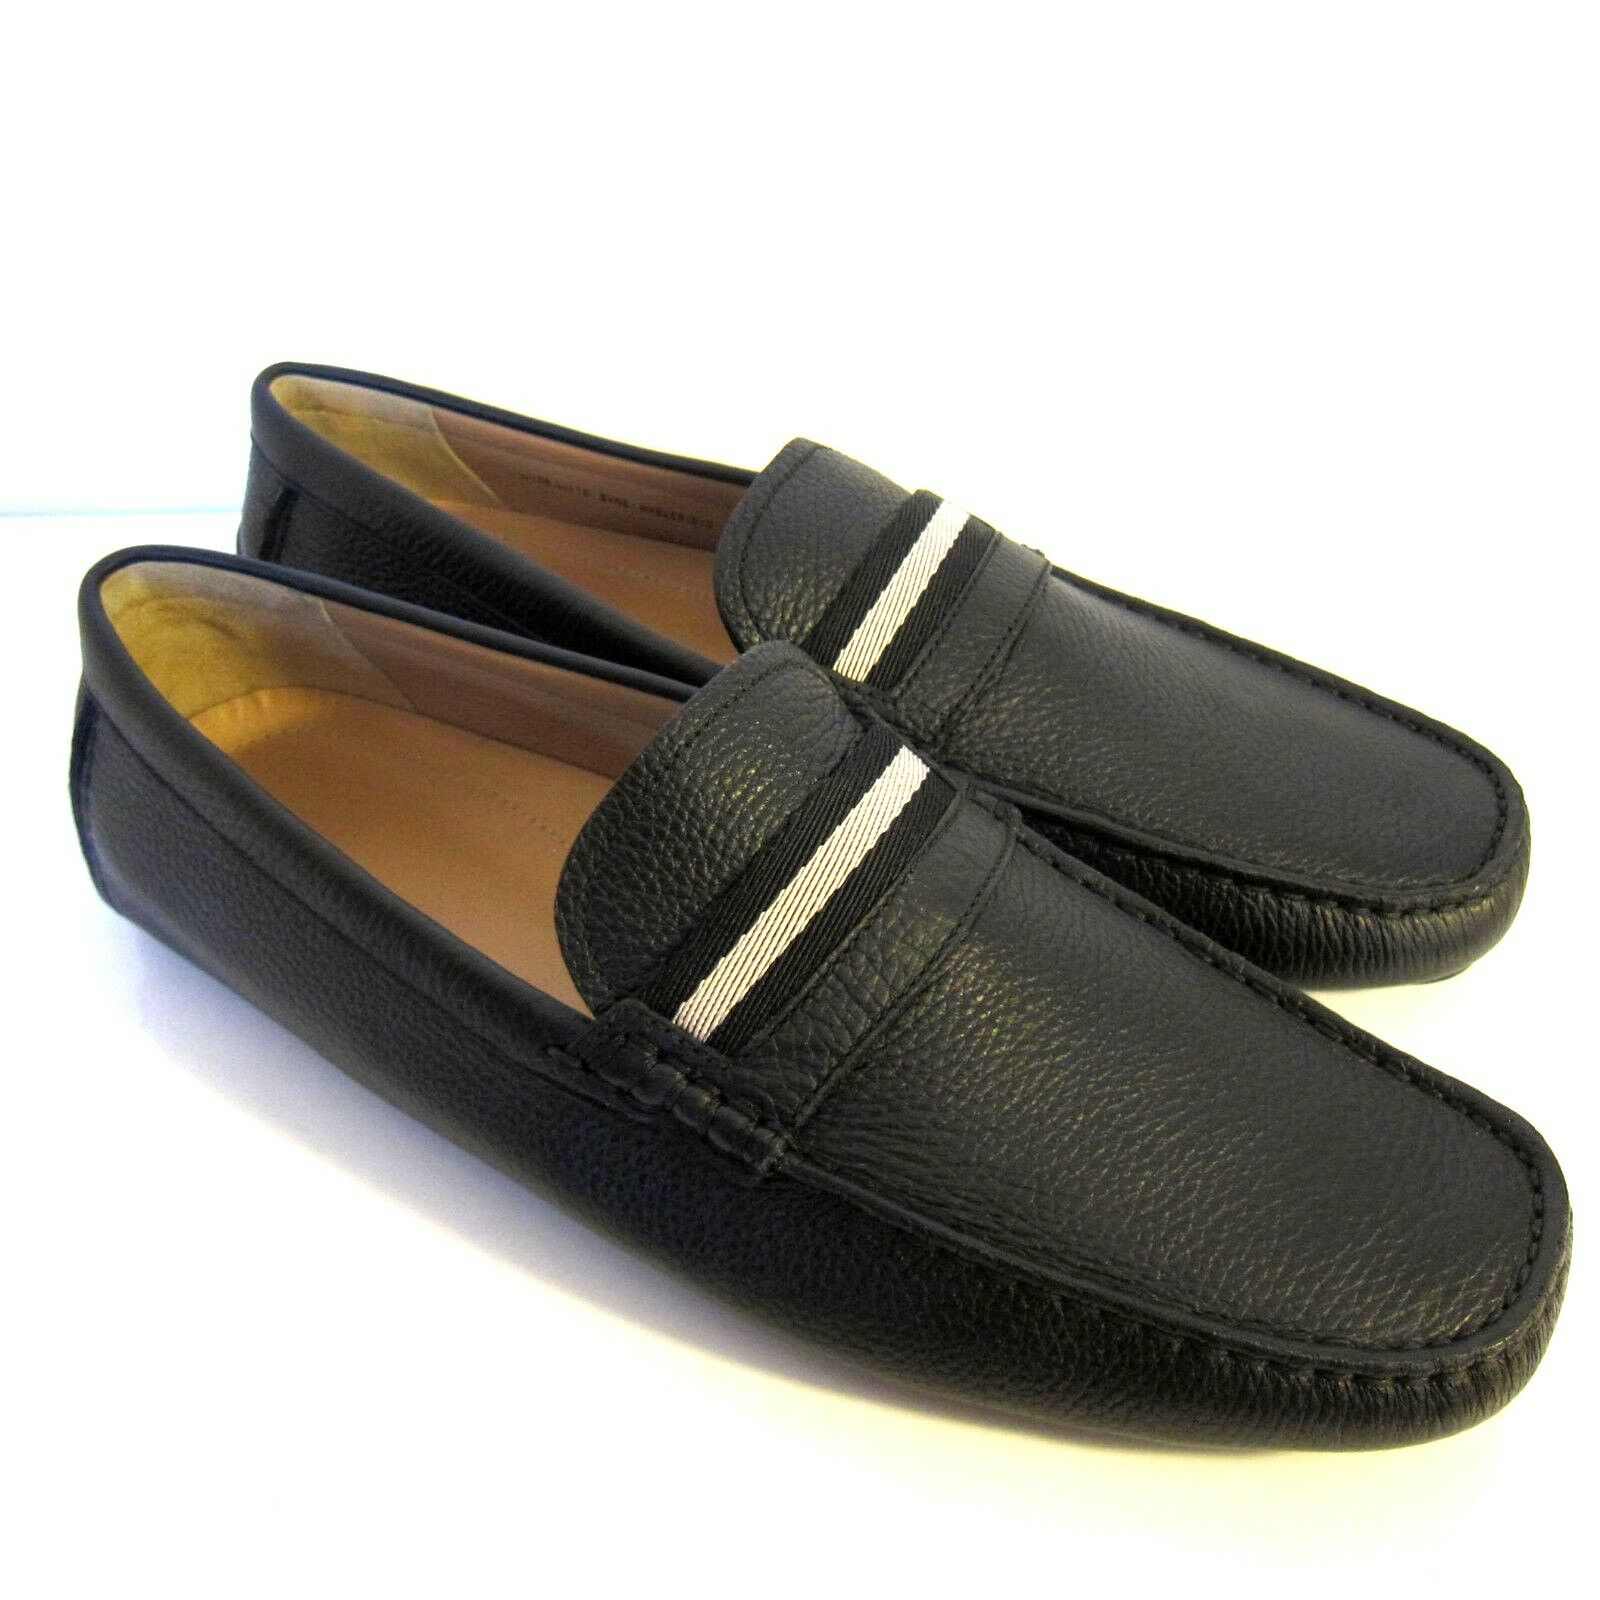 C-1604100 New Bally Wabler Black Calf Grained Moccasins Shoes Size US 11 D